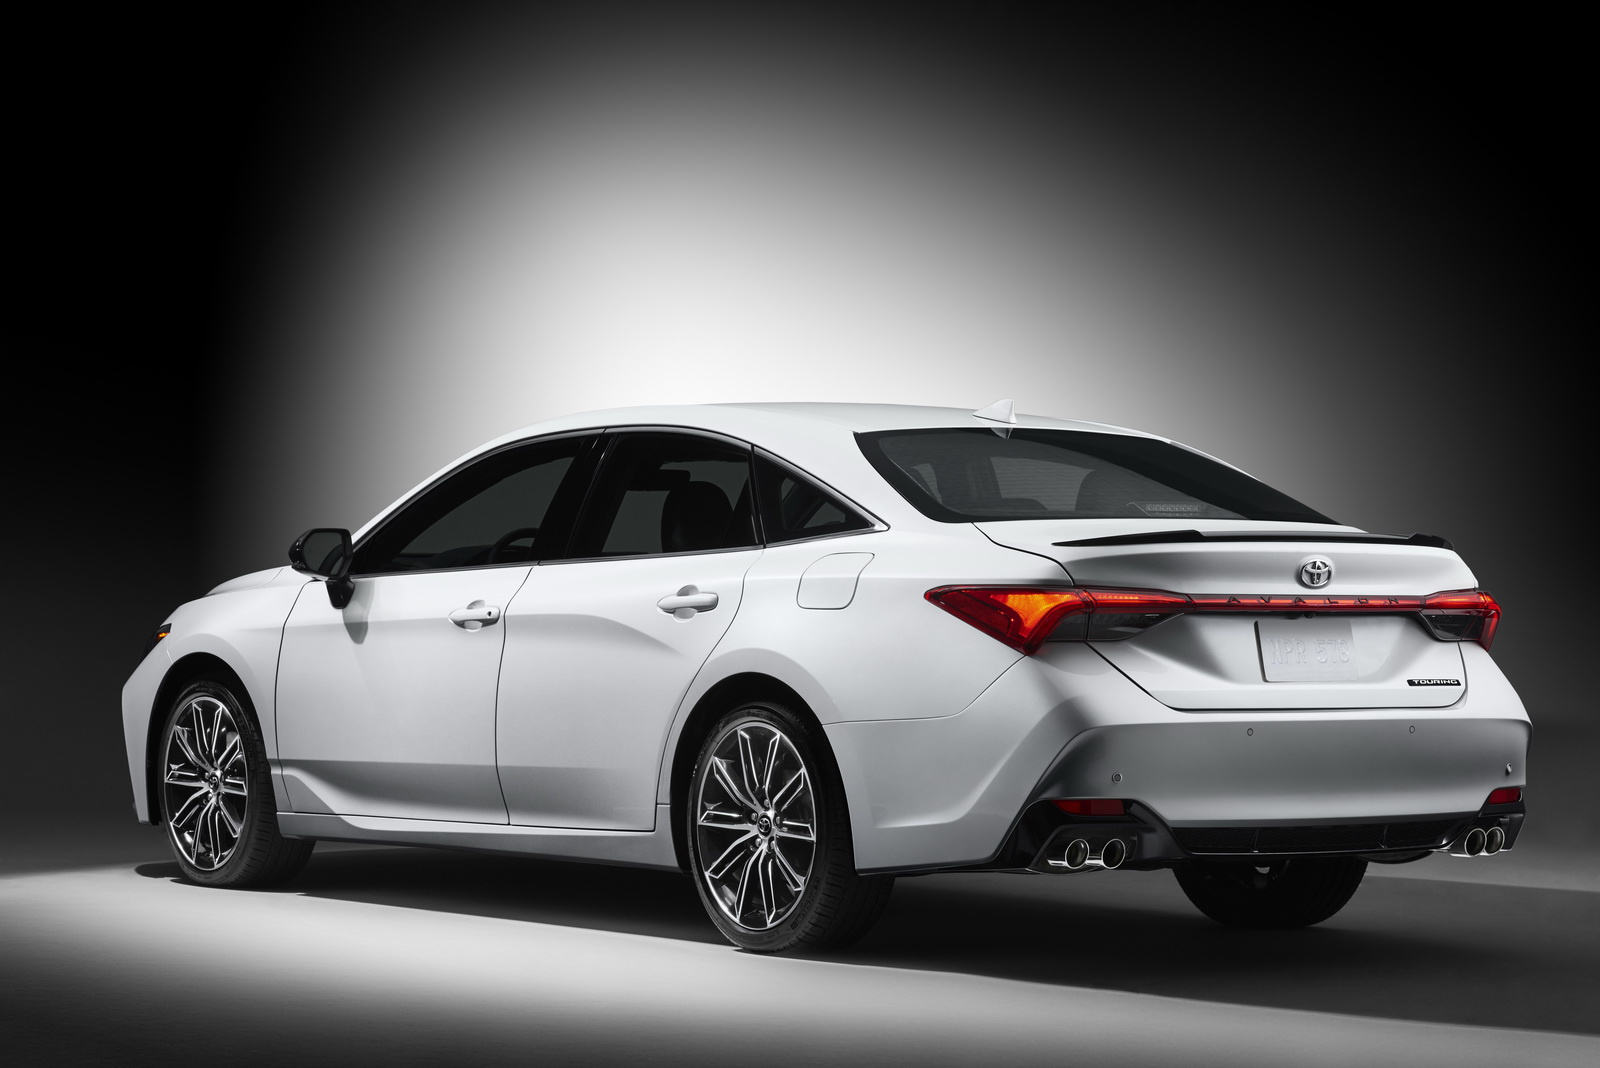 The new Avalon 2019 is being unveiled in Detroit The new Avalon 2019 is being unveiled in Detroit  D8 A7 D9 84 D8 AA D8 B5 D9 85 D9 8A D9 85  D8 A7 D9 84 D8 AE D9 84 D9 81 D9 8A  D9 84 D9 84 D8 B3 D9 8A D8 A7 D8 B1 D8 A9  D8 AA D9 88 D9 8A D9 88 D8 AA D8 A7  D8 A7 D9 81 D8 A7 D9 84 D9 88 D9 86 2019